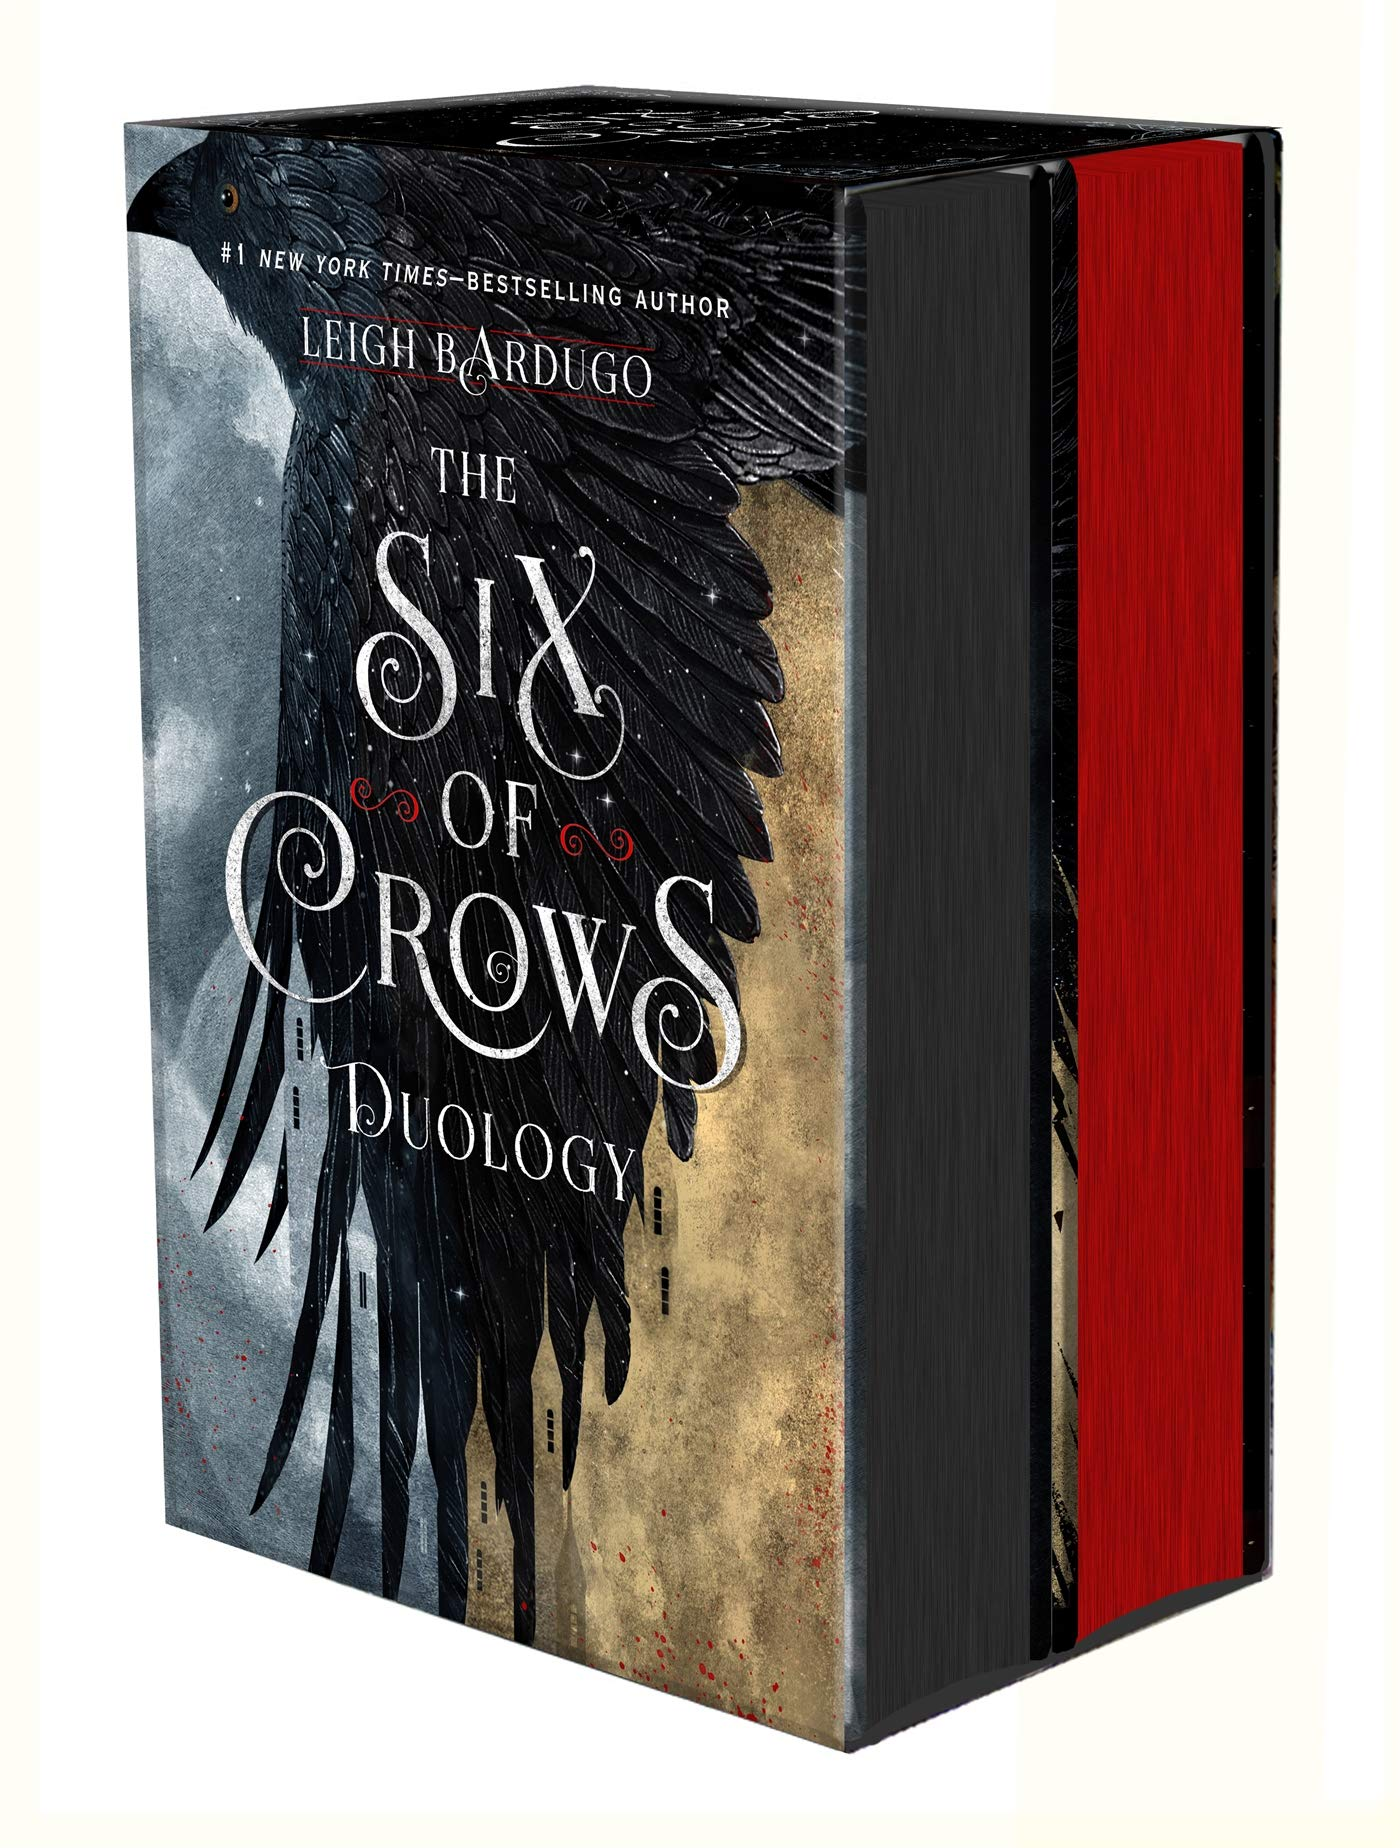 Amazon.com: The Six of Crows Duology Boxed Set: Six of Crows and ...